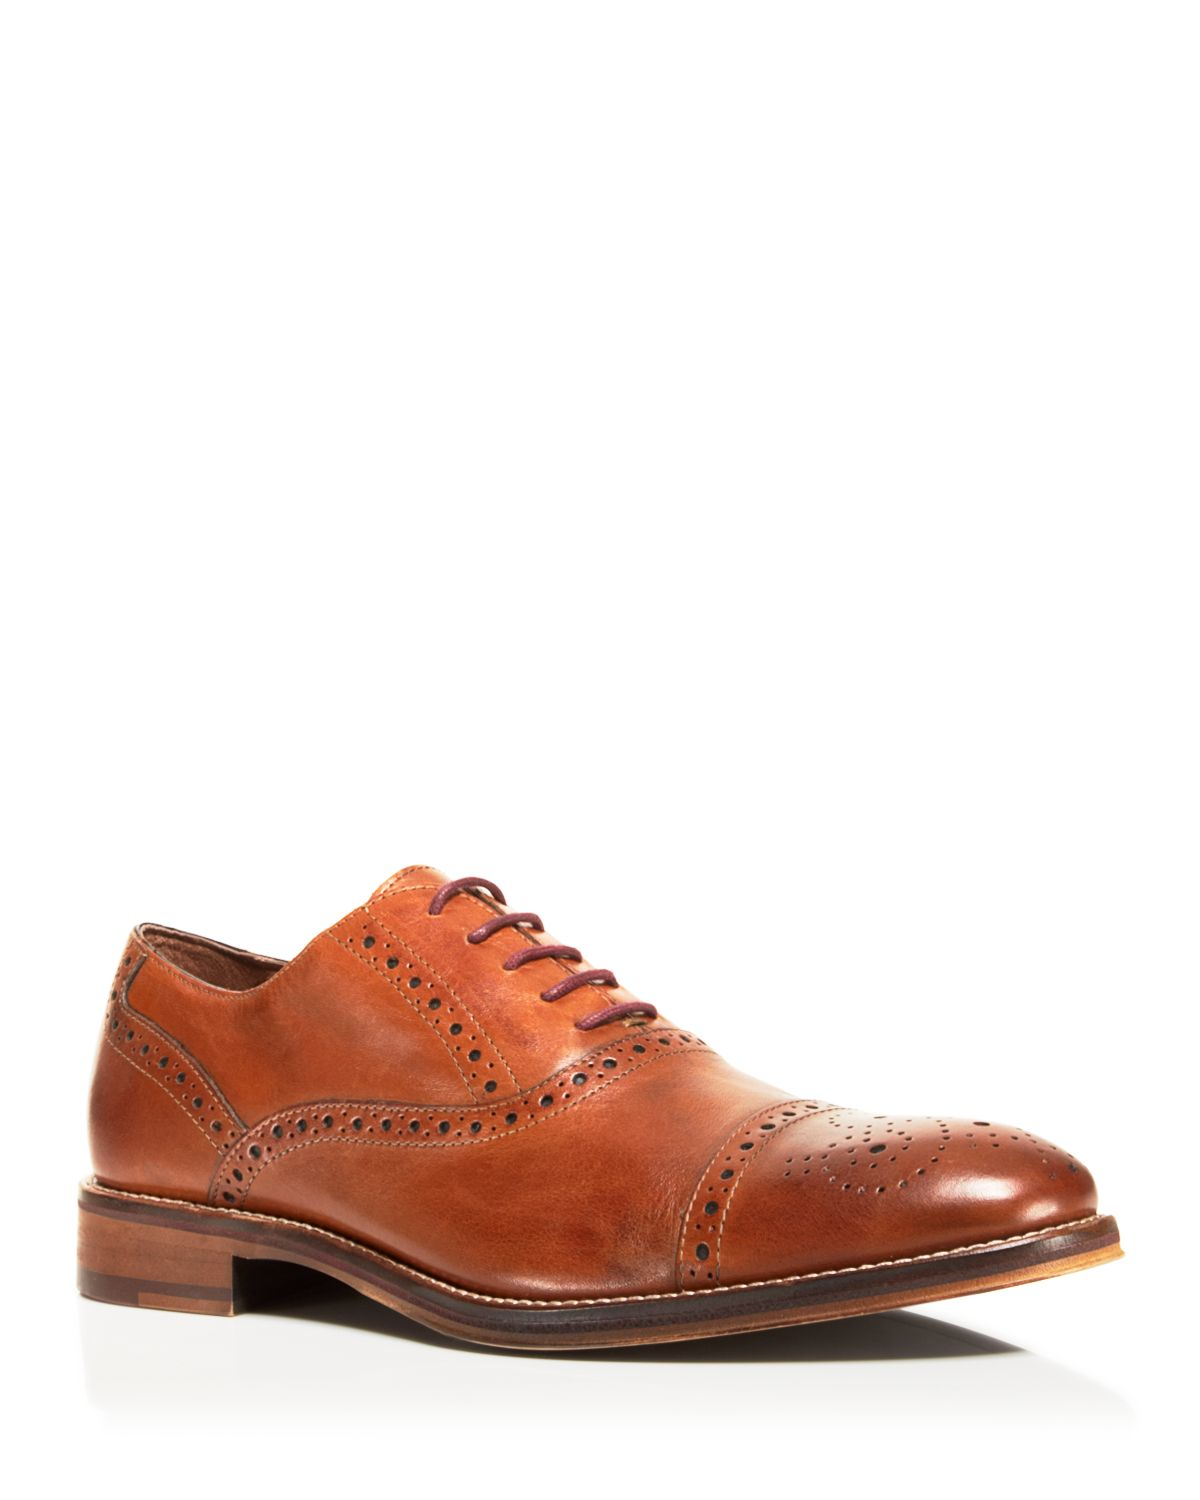 Johnston Amp Murphy Conard Cap Toe Oxfords In Brown For Men